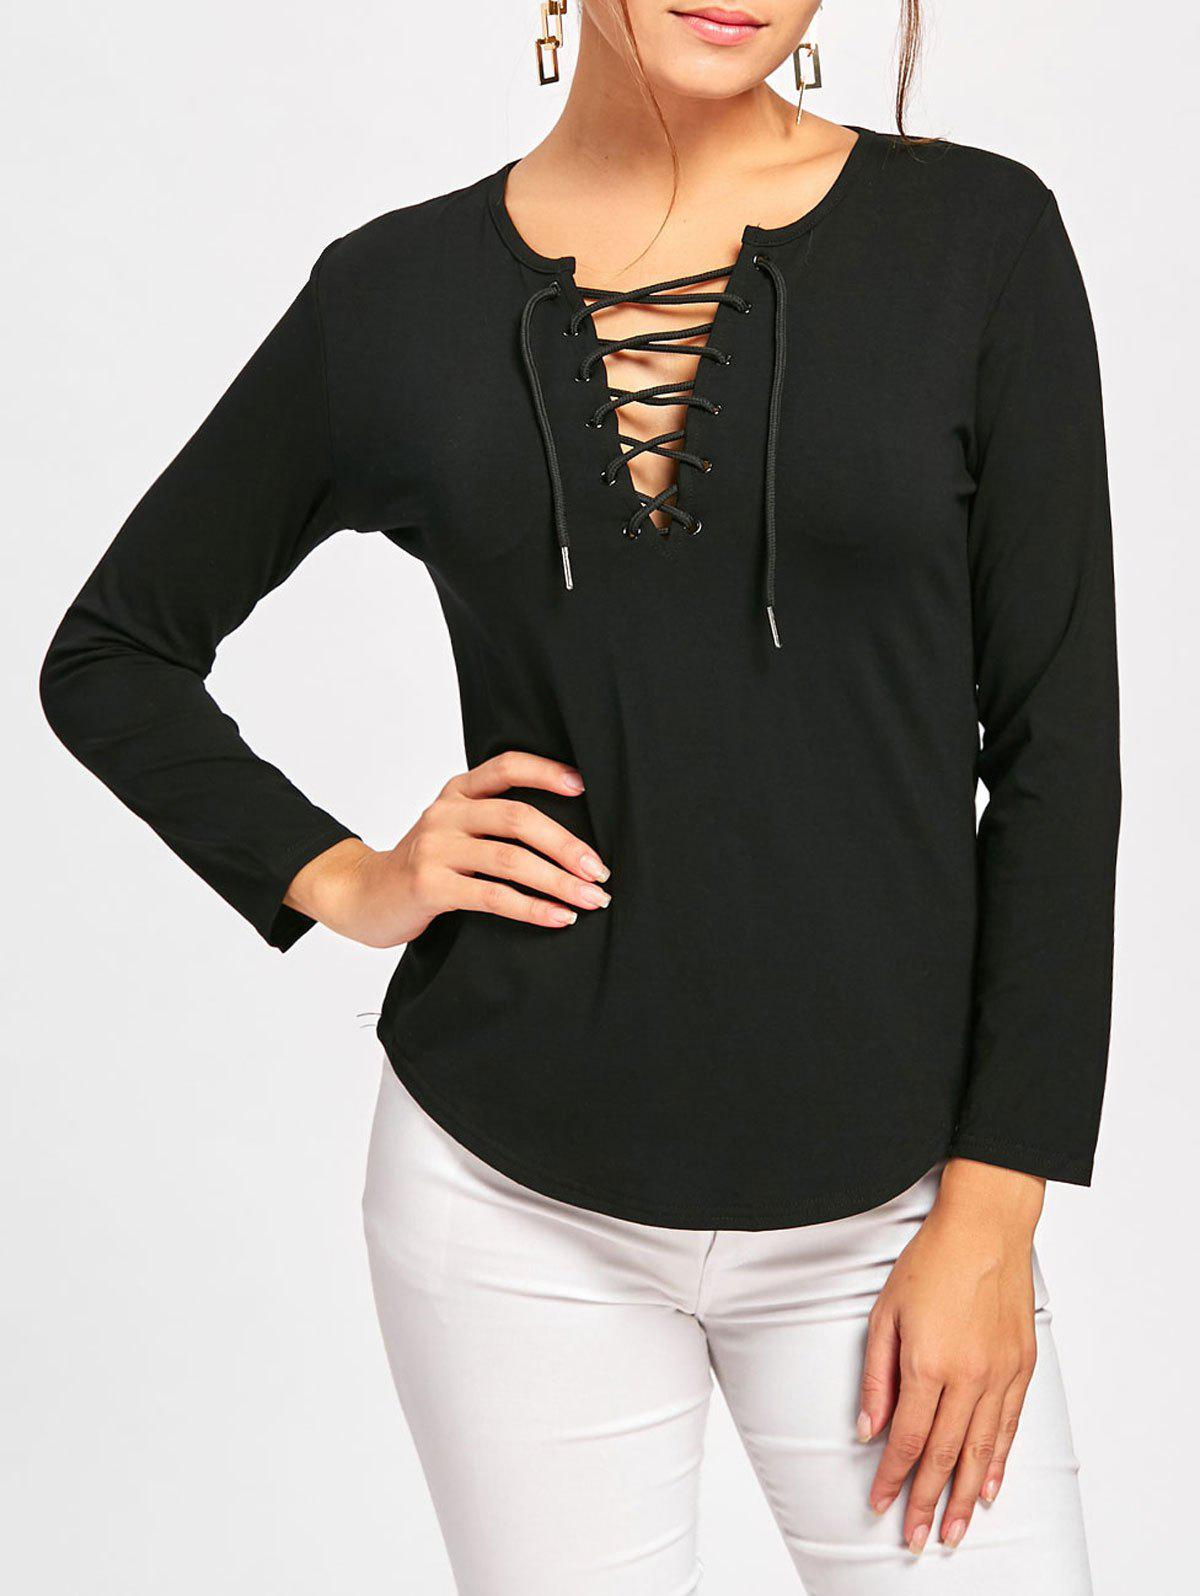 Plunge Lace Up Long Sleeve Tee - BLACK S